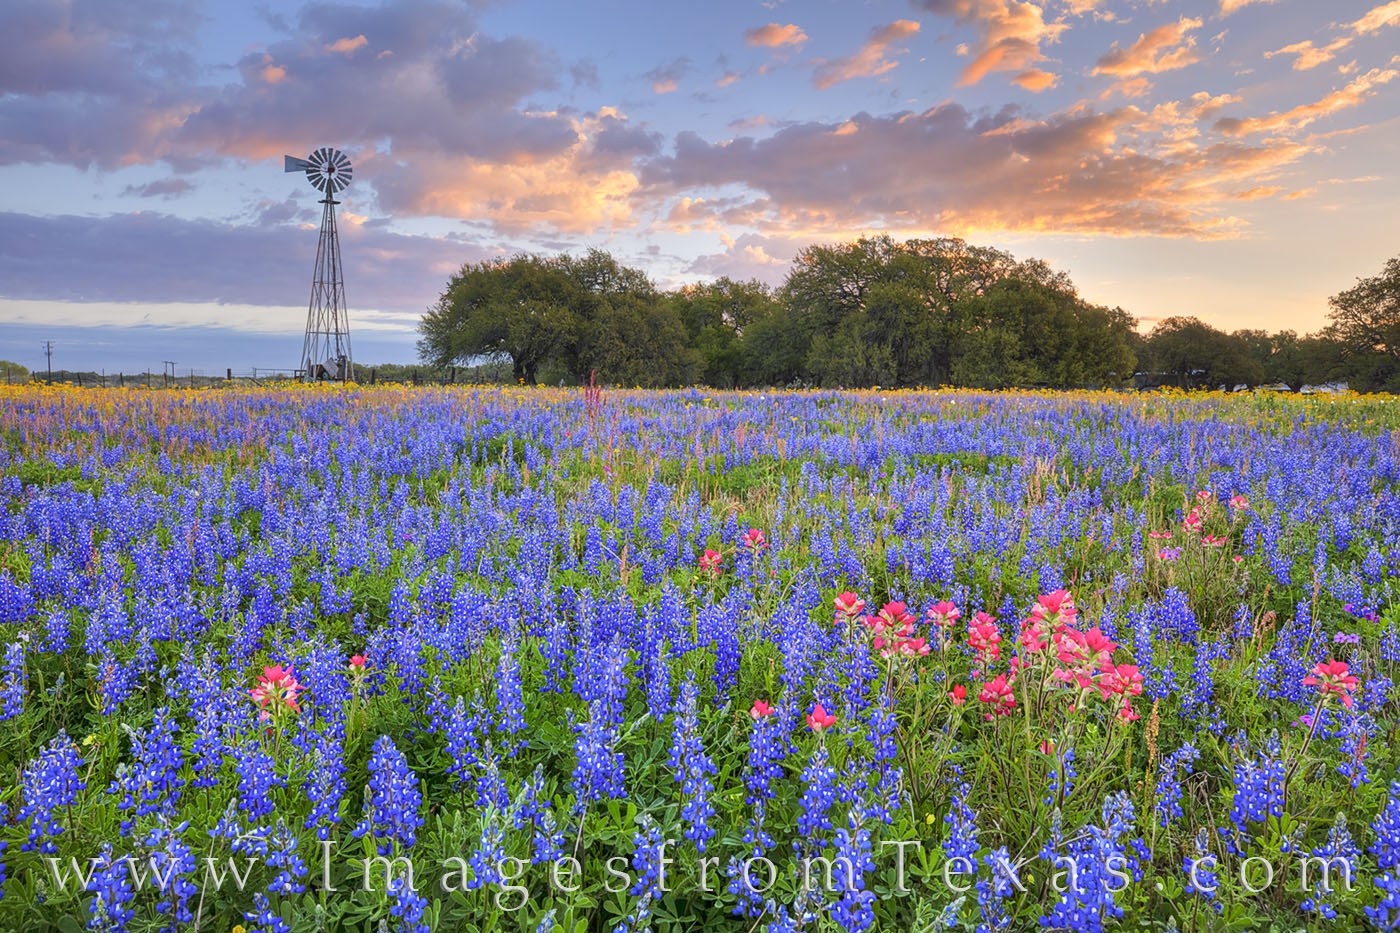 Atascosa county, wildflowers, bluebonnets, paintbrush, windmill, morning, poteet, south texas, sunrise, peace, blue, red, spring, bloom